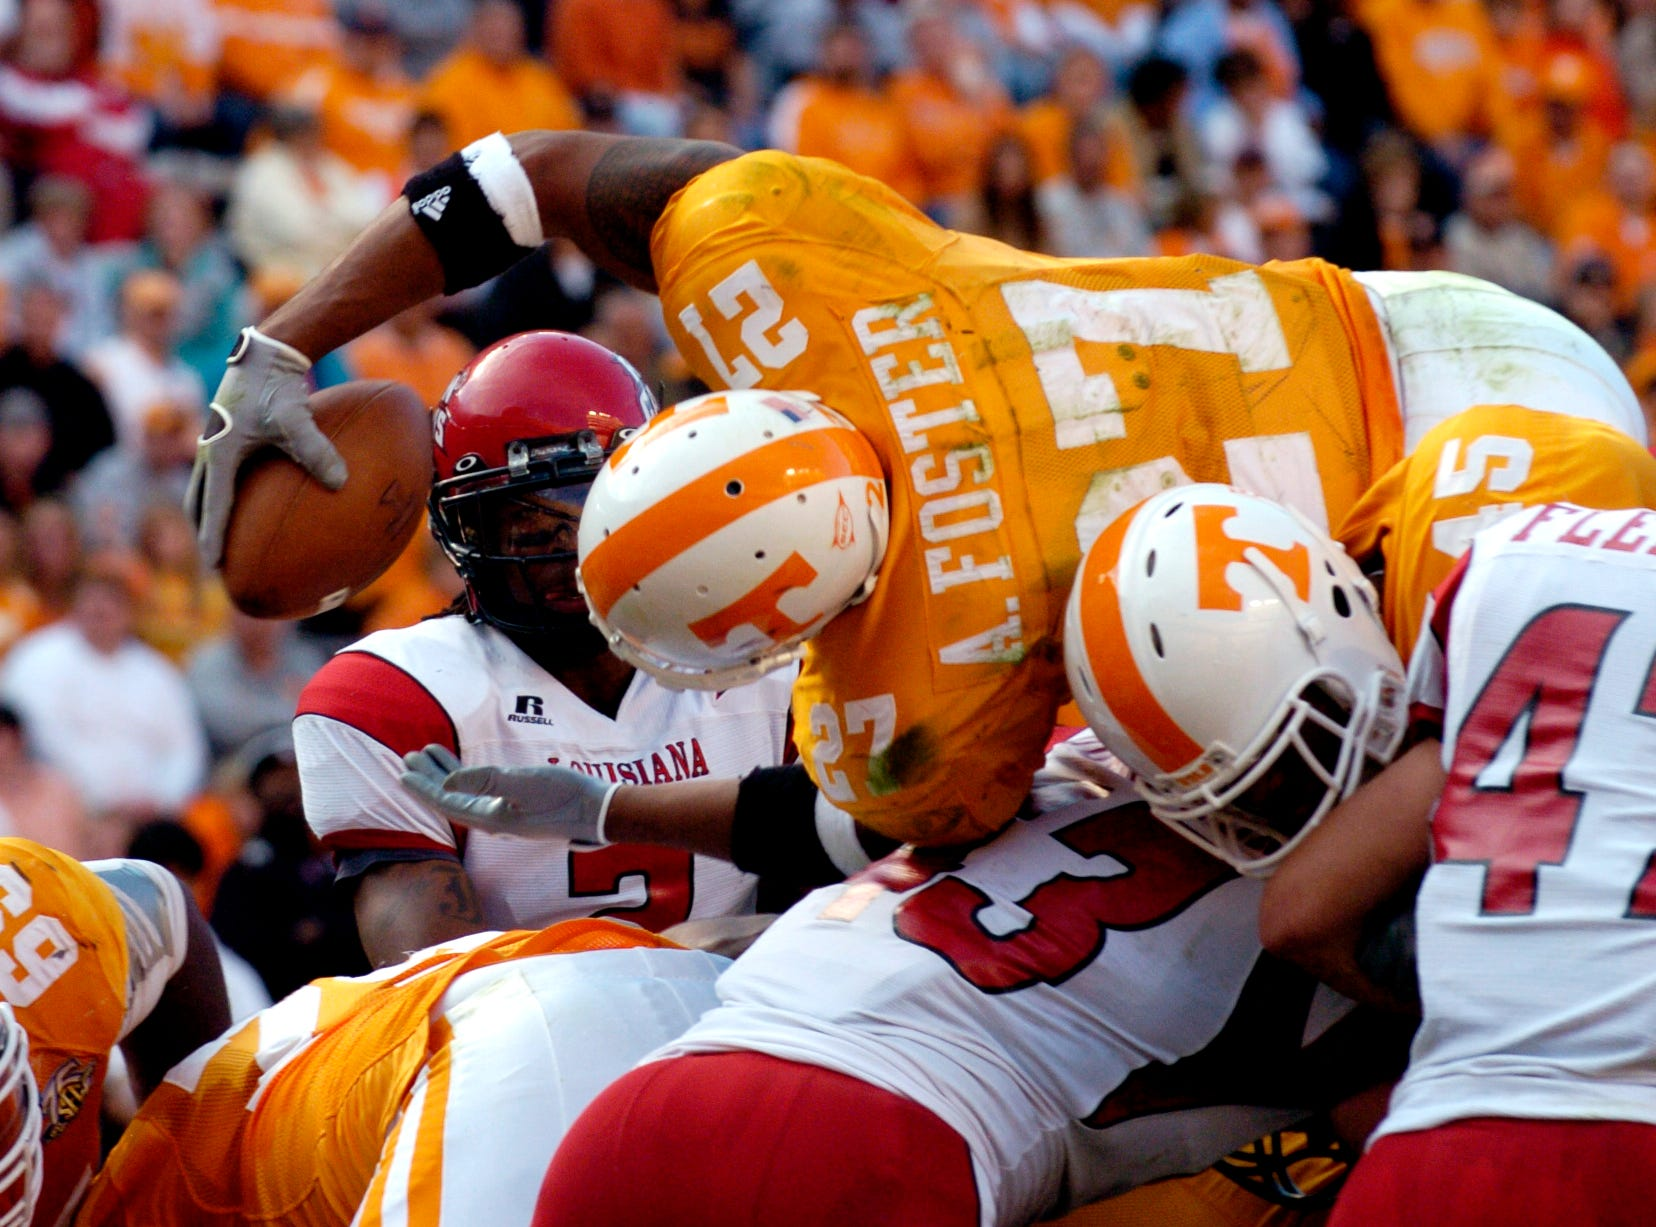 Tennessee's Arian Foster dives over the top of the line for a 1-yard touchdown against Louisiana-Lafayette on Saturday at Neyland Stadium. The Vols celebrated homecoming by crushing the Ragin' Cajuns 59-7, improving to 6-3 for the season.